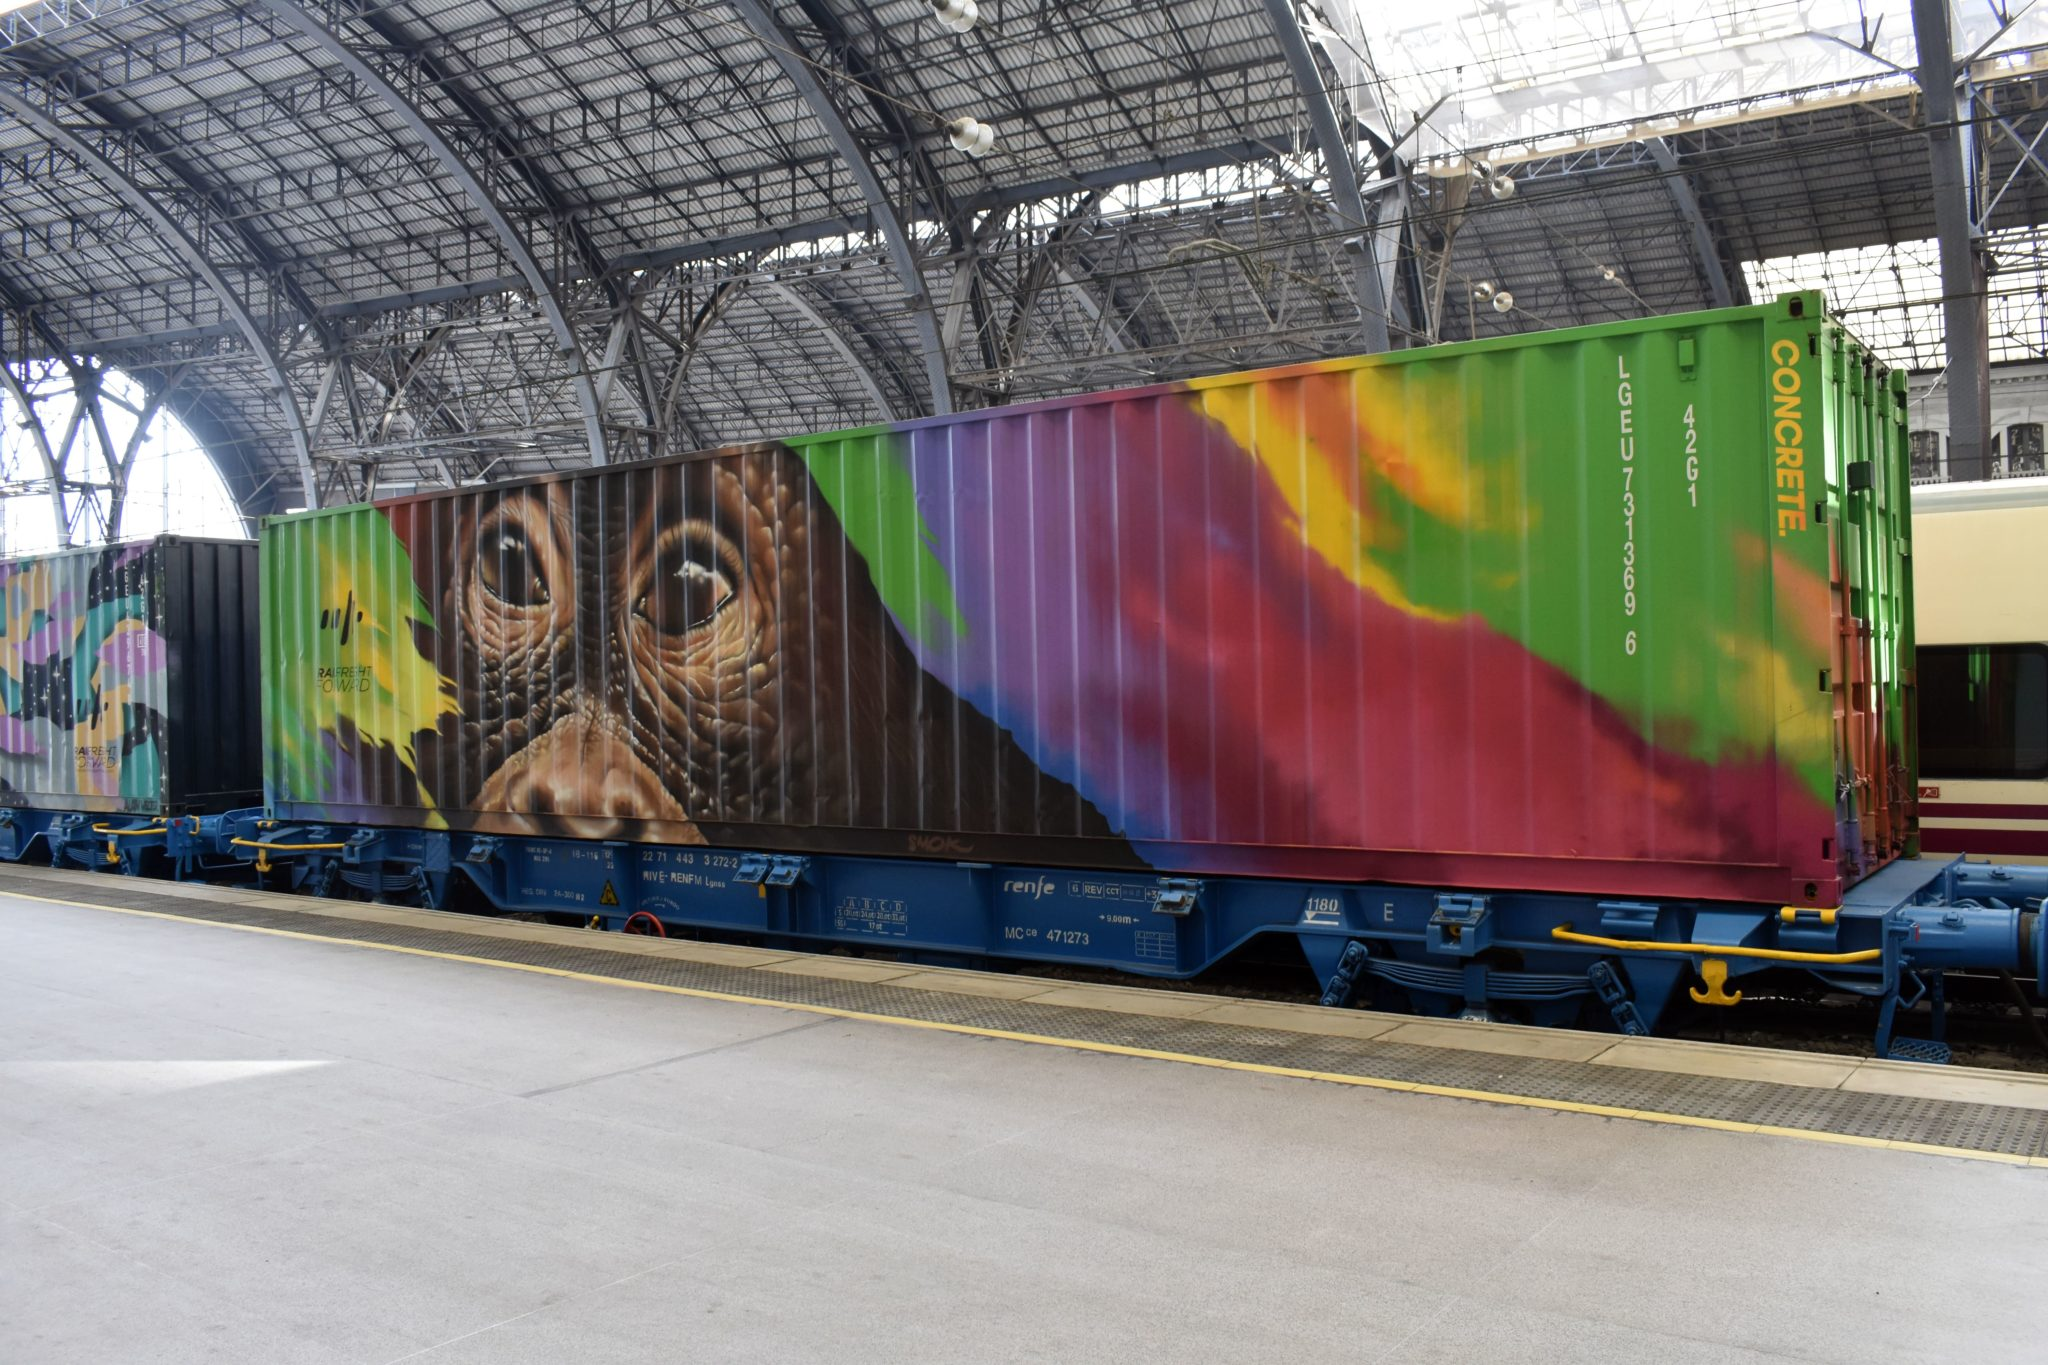 Smok Noah's train street art